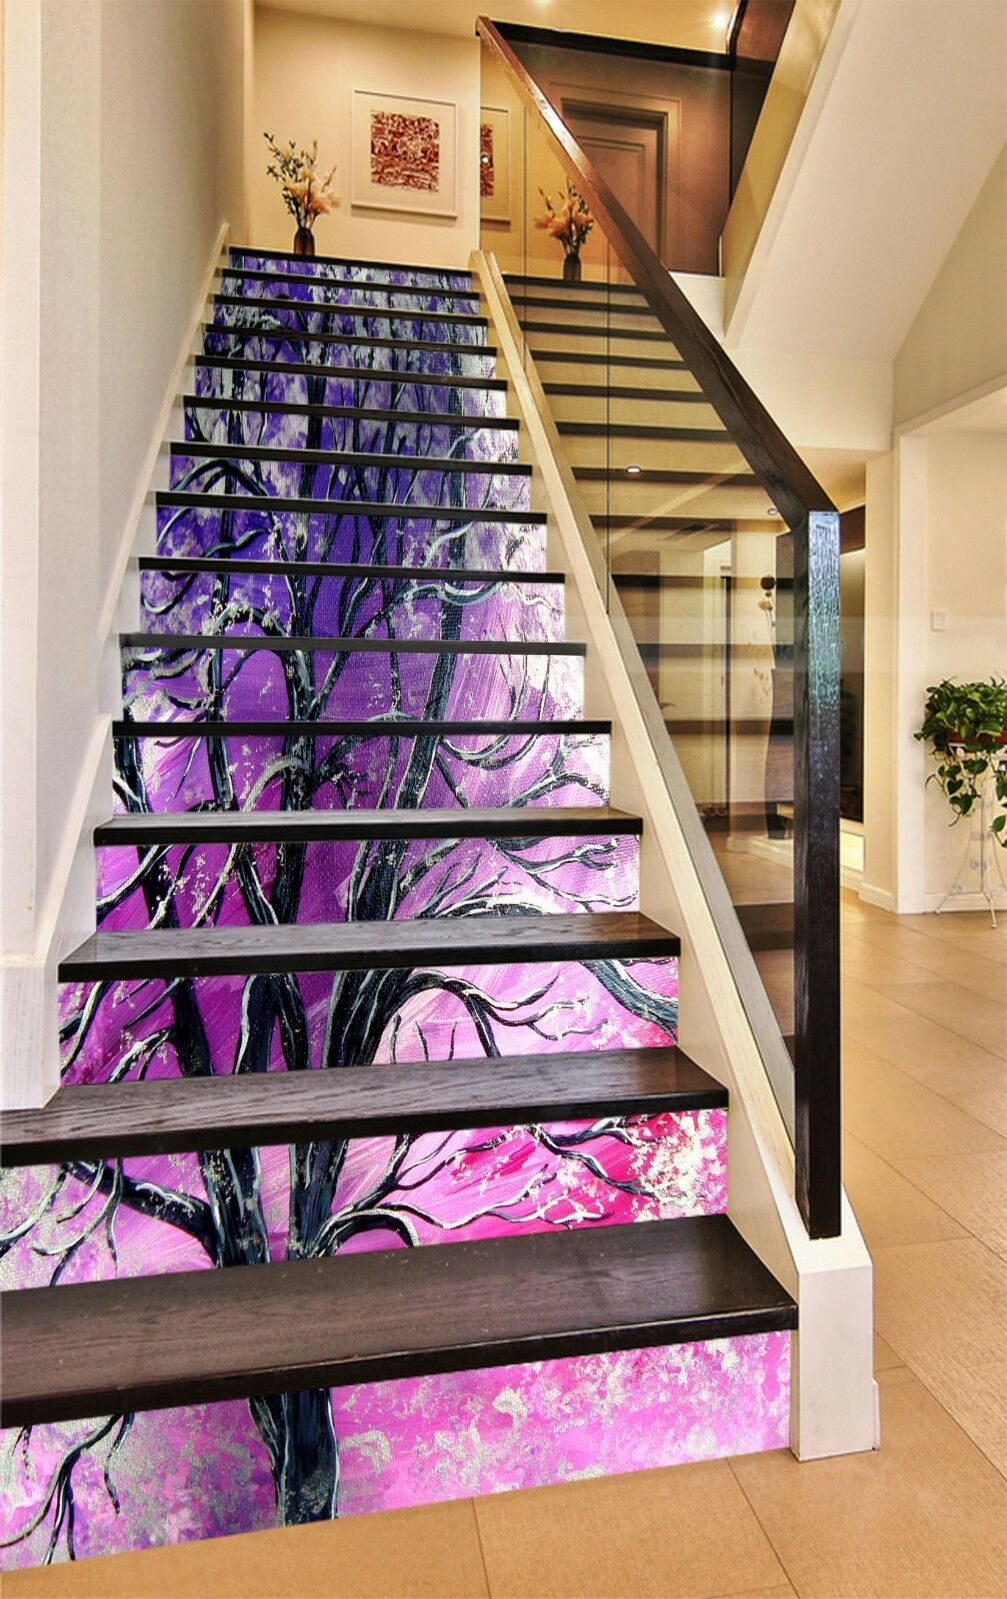 3D Branches Stair Risers Decoration Photo Mural Vinyl Decal Wallpaper CA